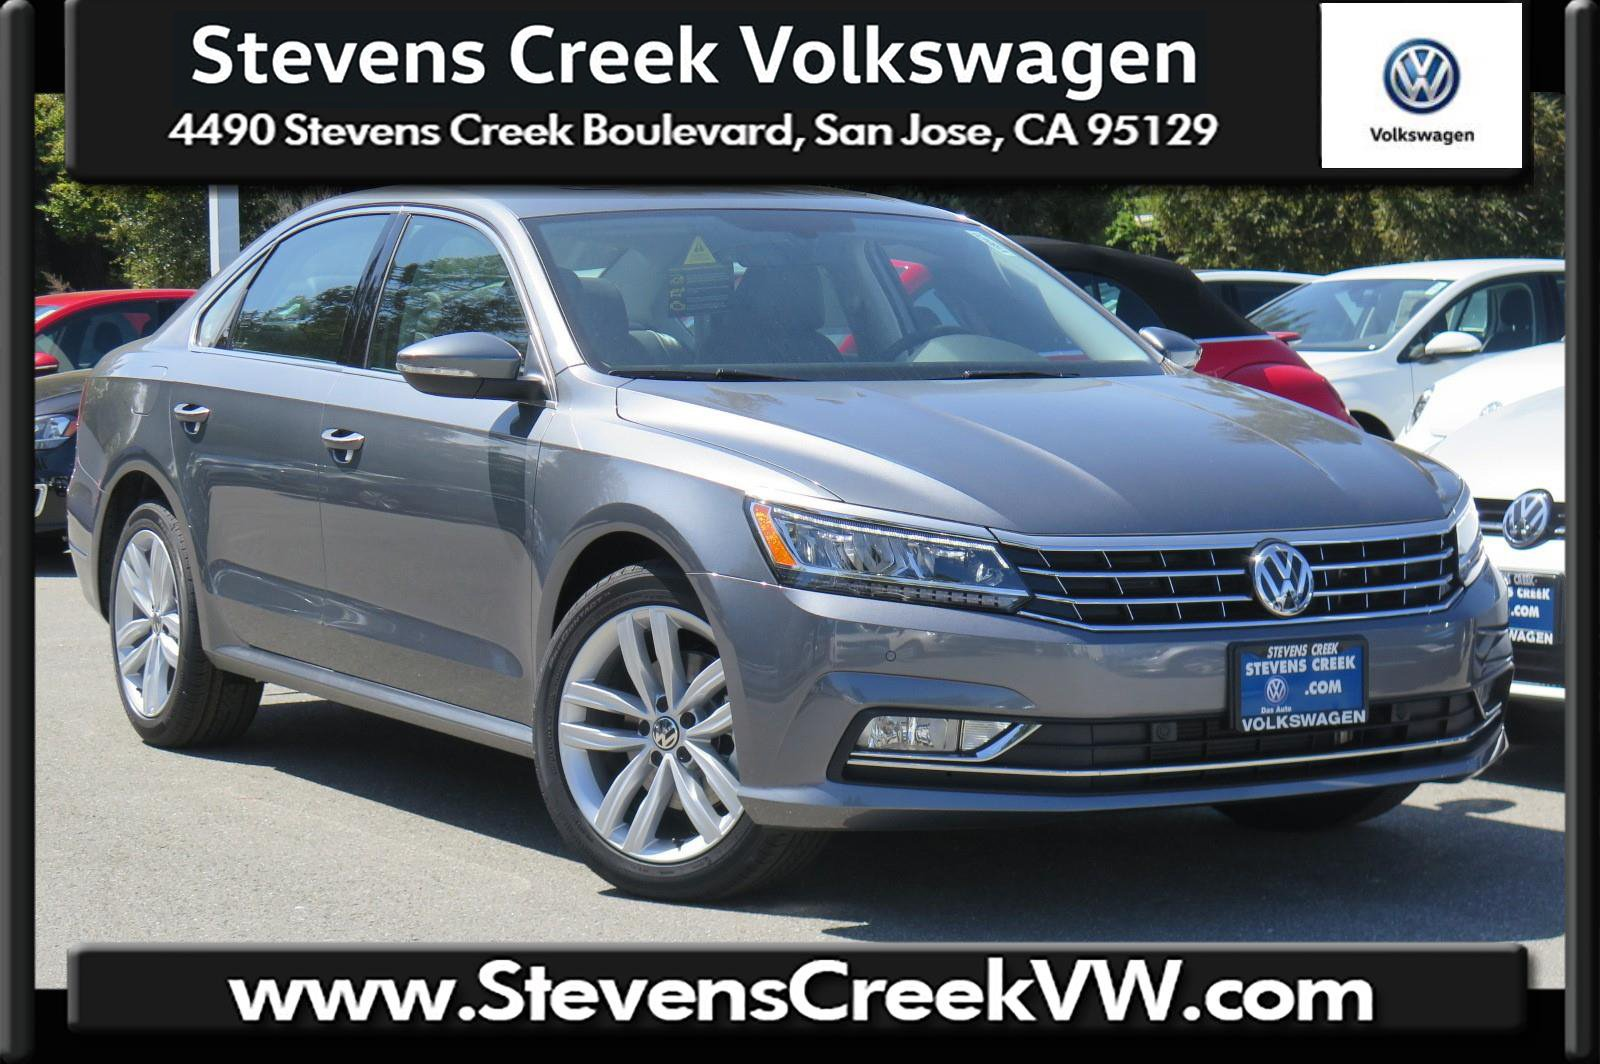 New 2018 Volkswagen Passat 2.0T SE w/Technology With Navigation VIN 1VWBA7A37JC027636 MSRP $30,900